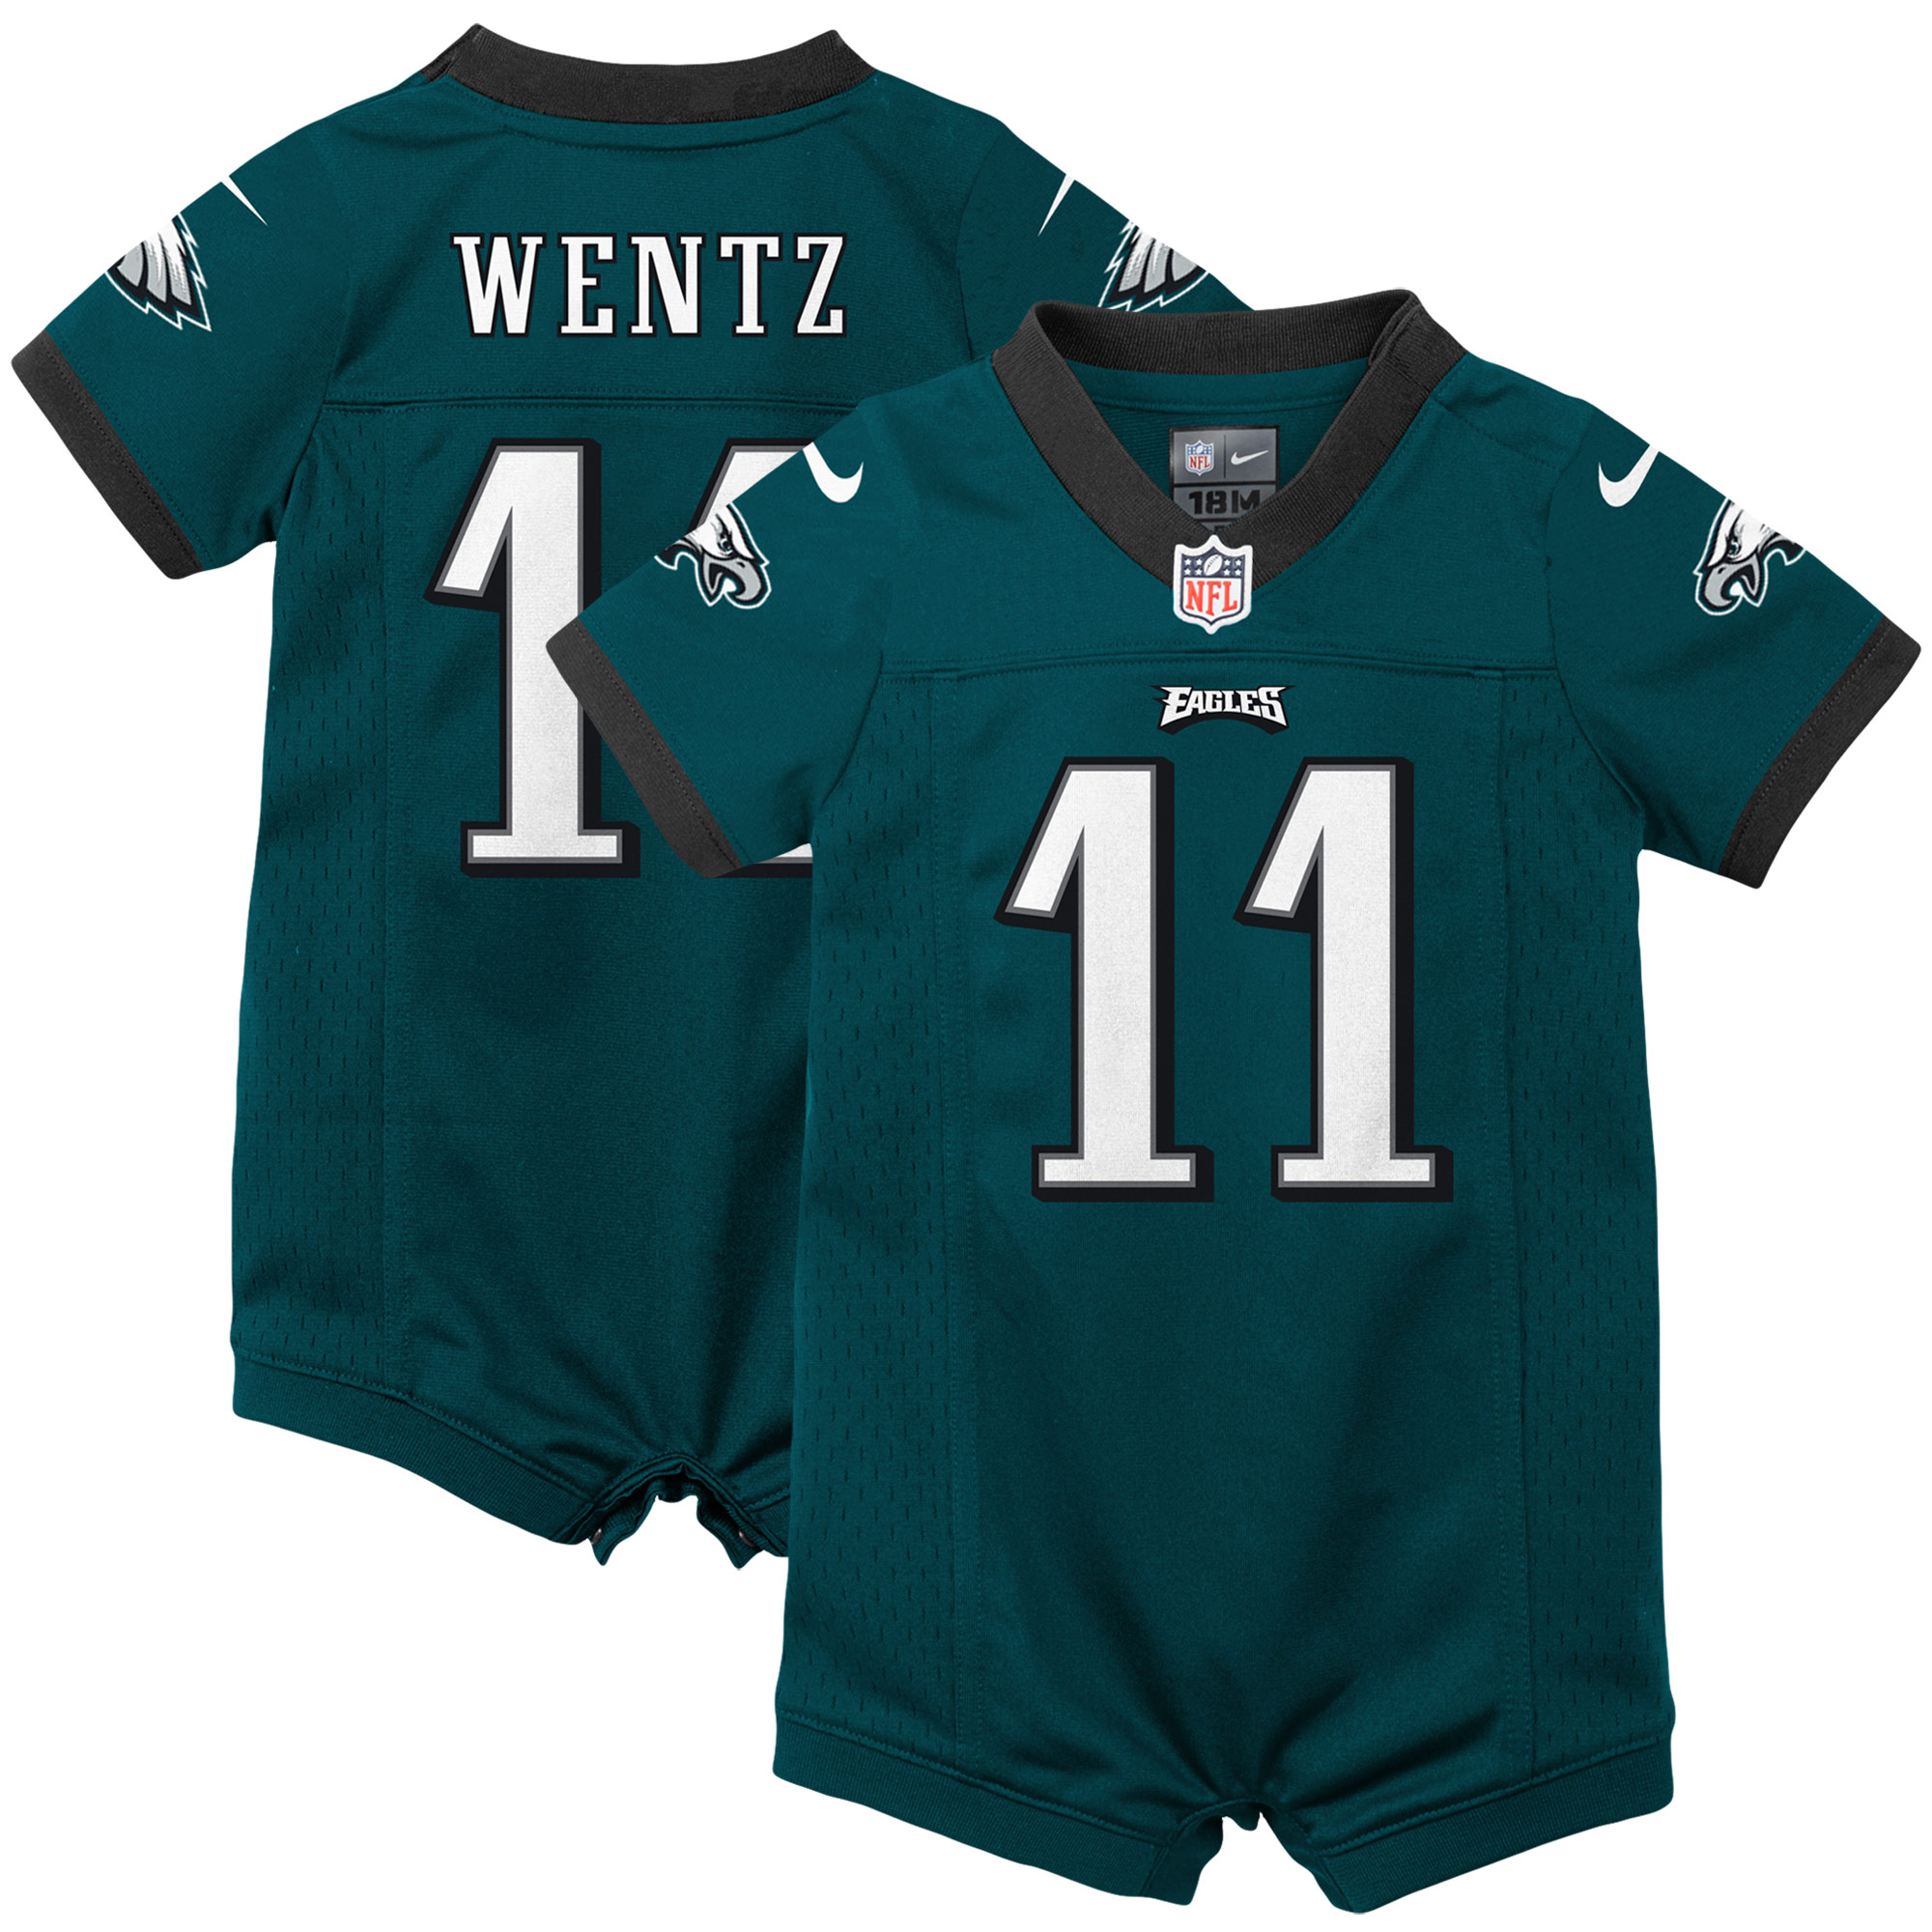 Carson Wentz Philadelphia Eagles Nike Infant Romper Jersey - Green